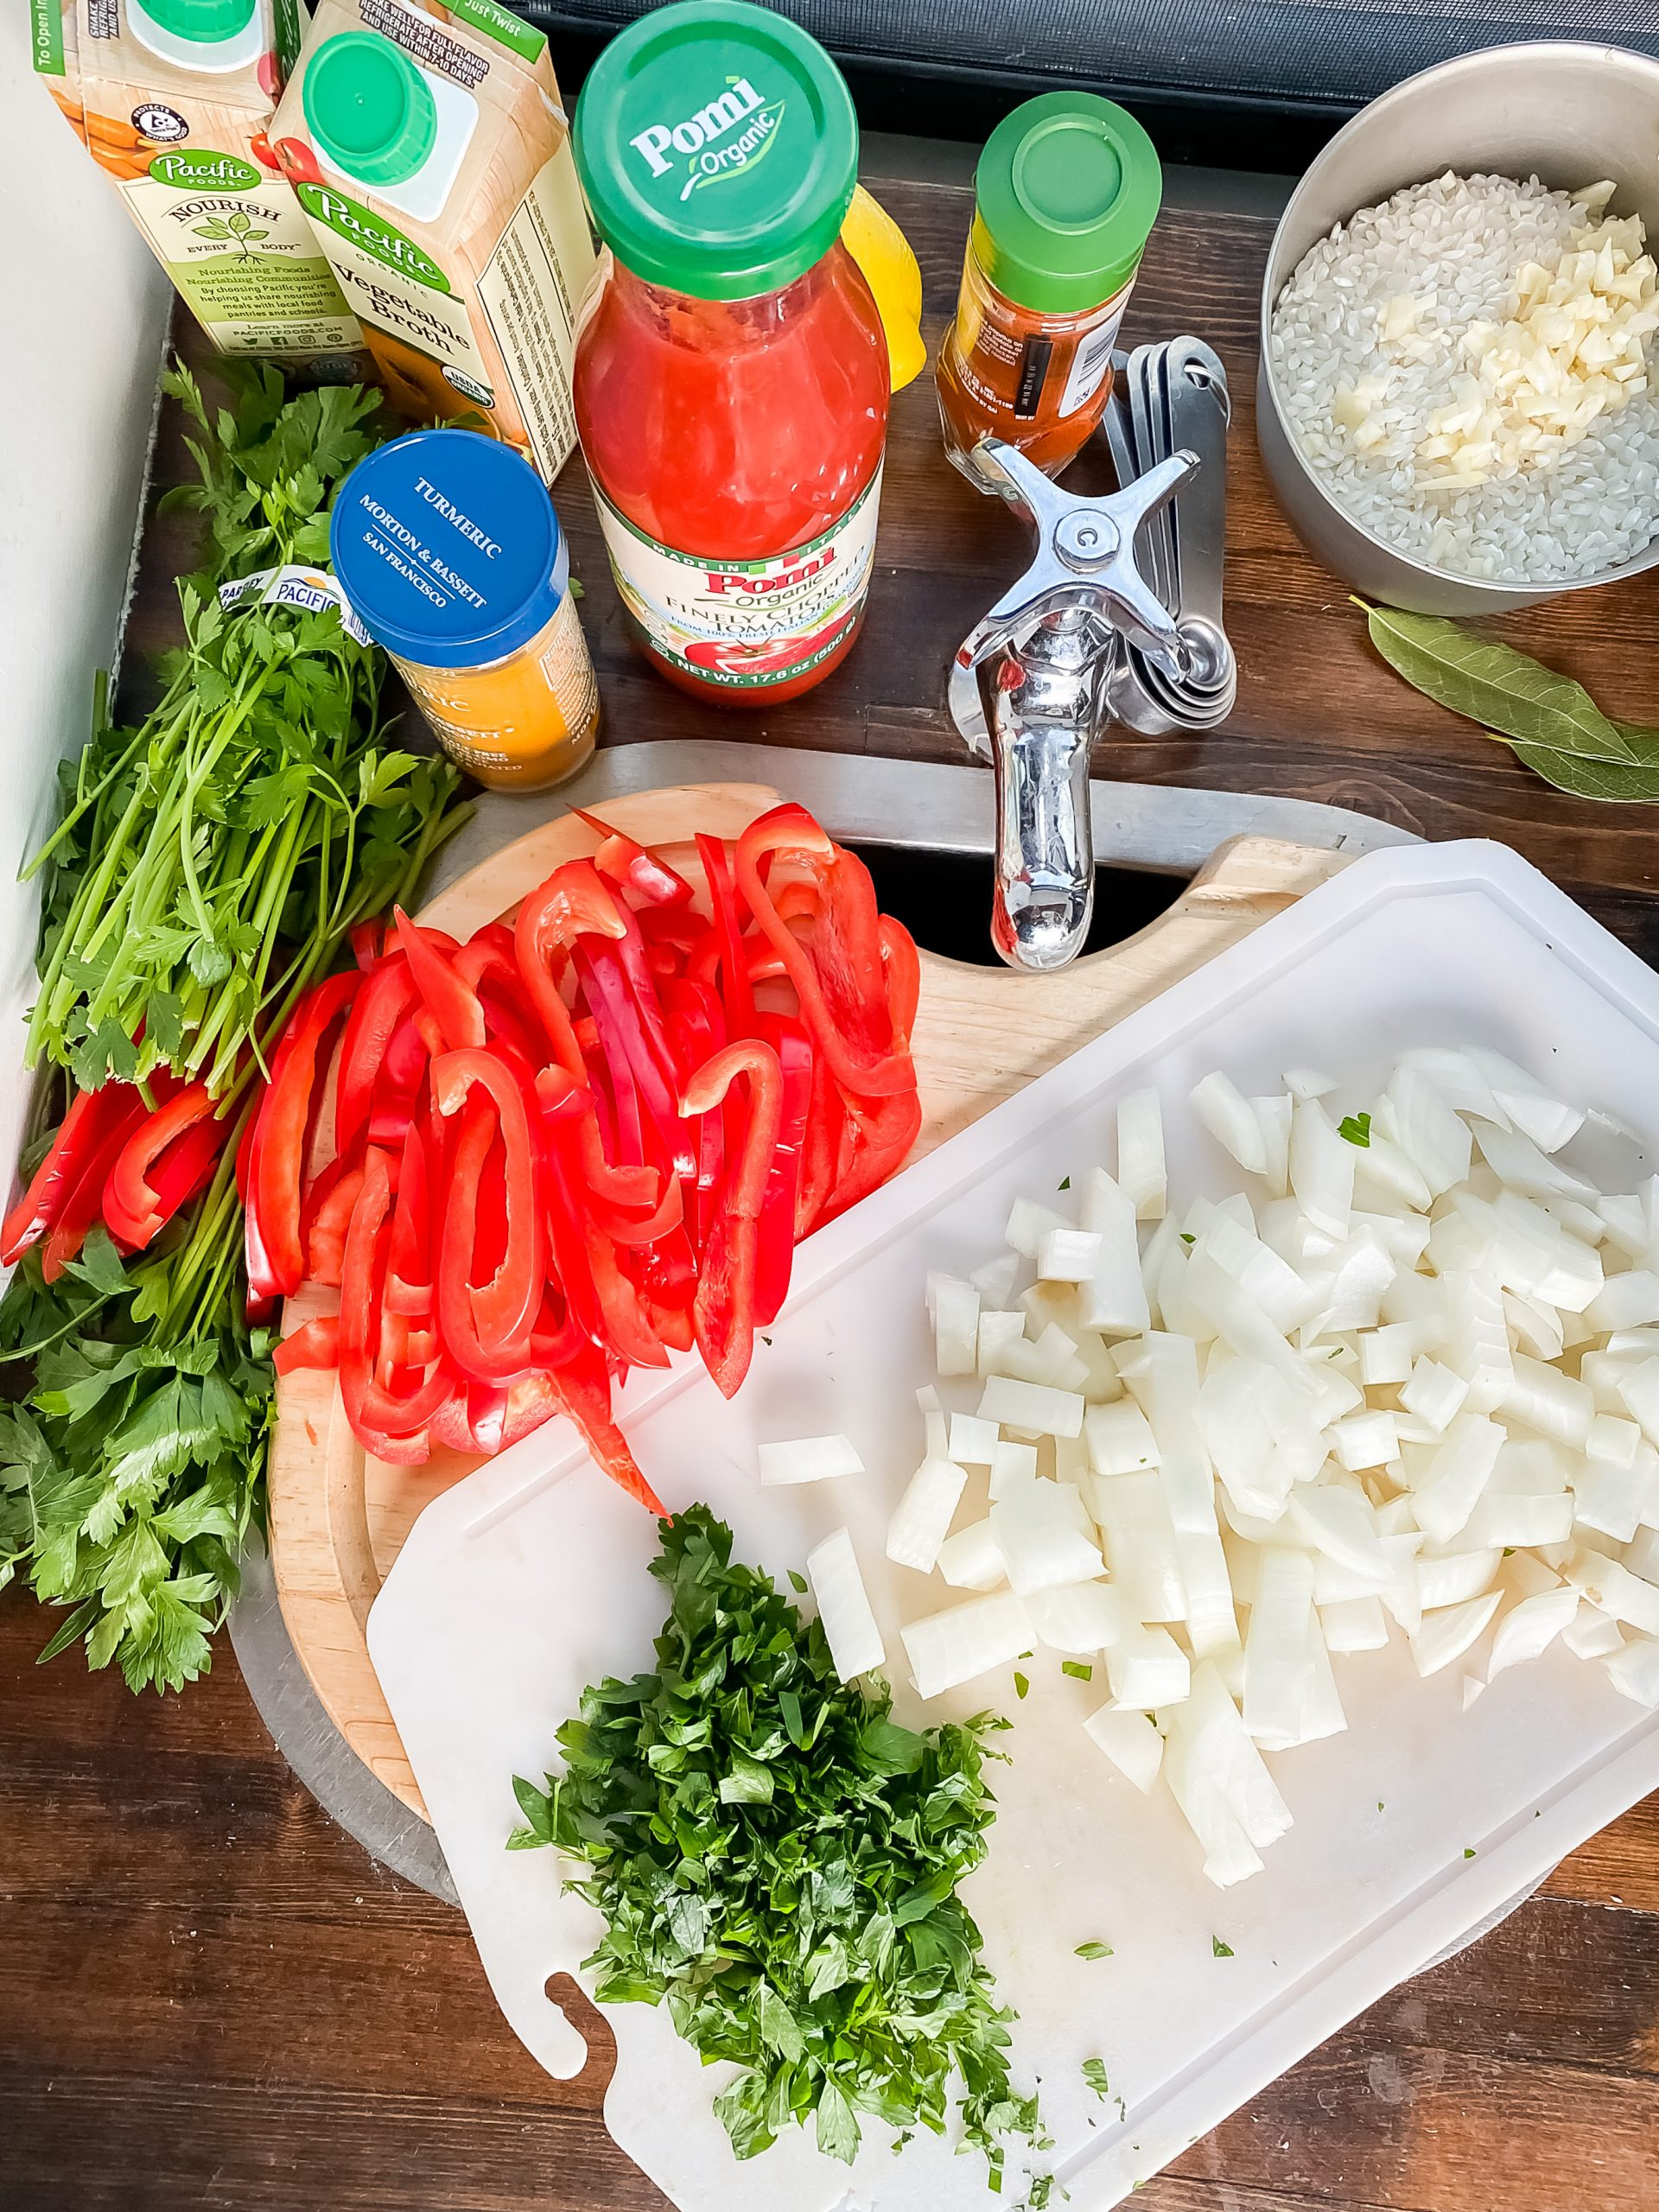 The 10 main ingredients and spices you need to make an easy paella recipe.